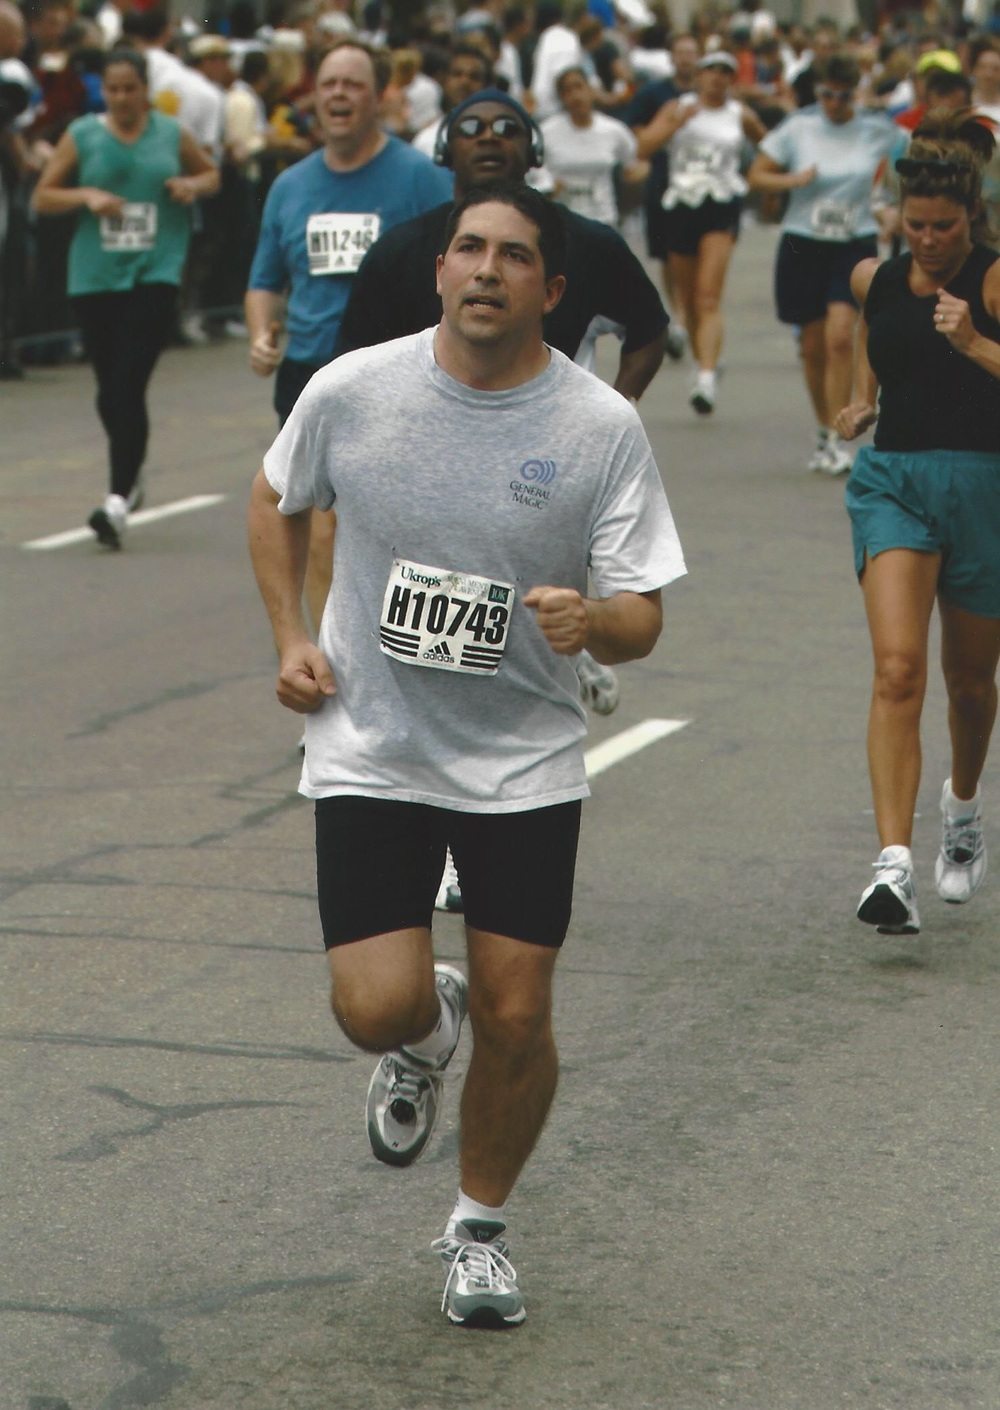 Garth runs the 10k in 2004